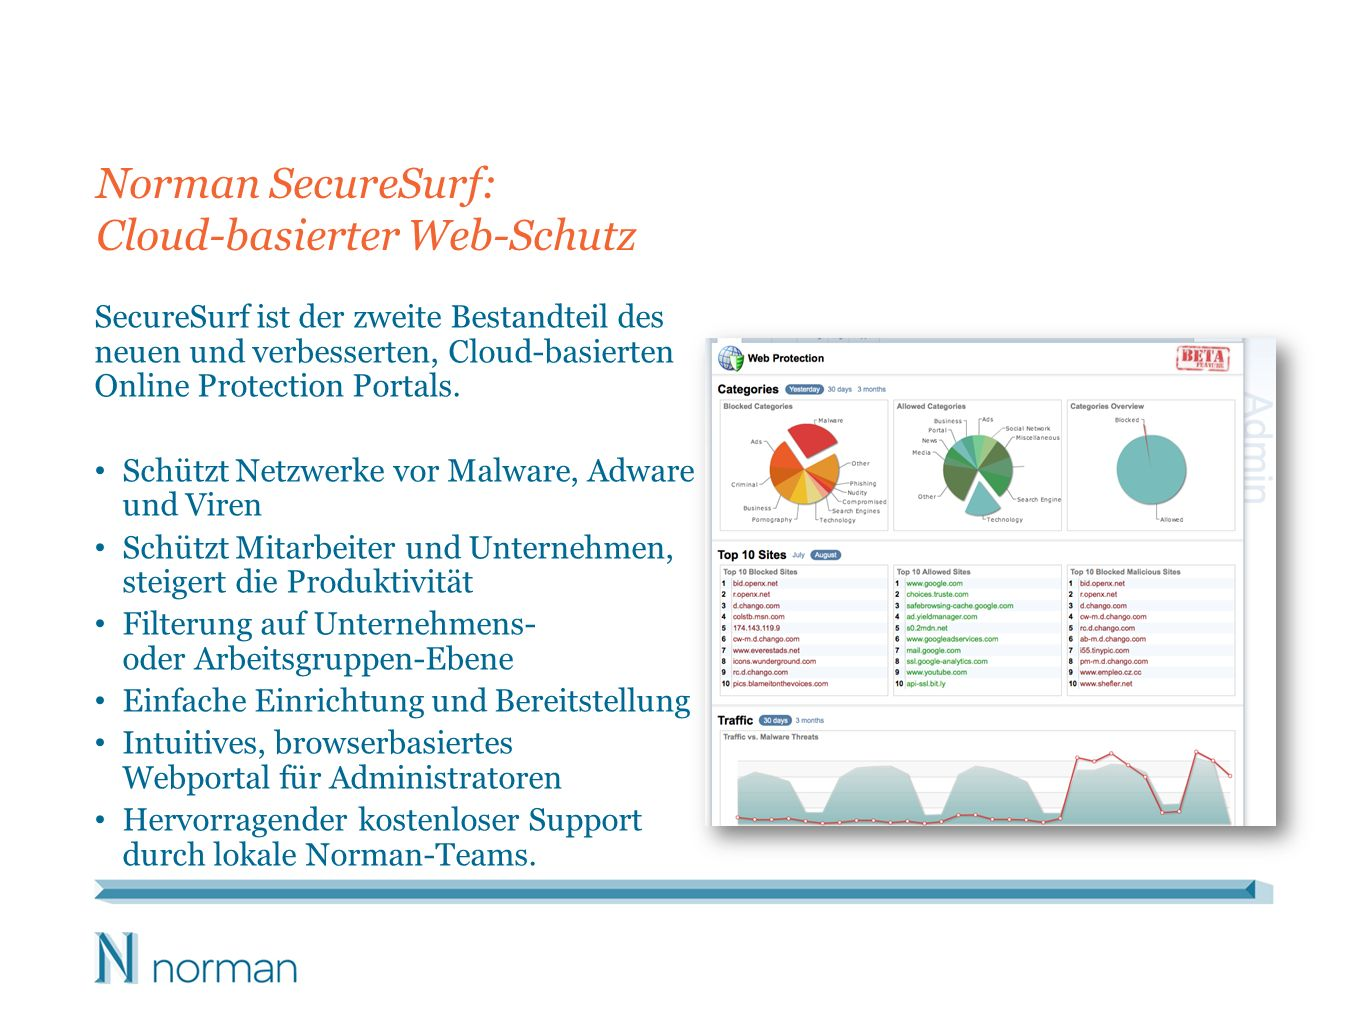 Norman SecureSurf: Cloud-basierter Web-Schutz